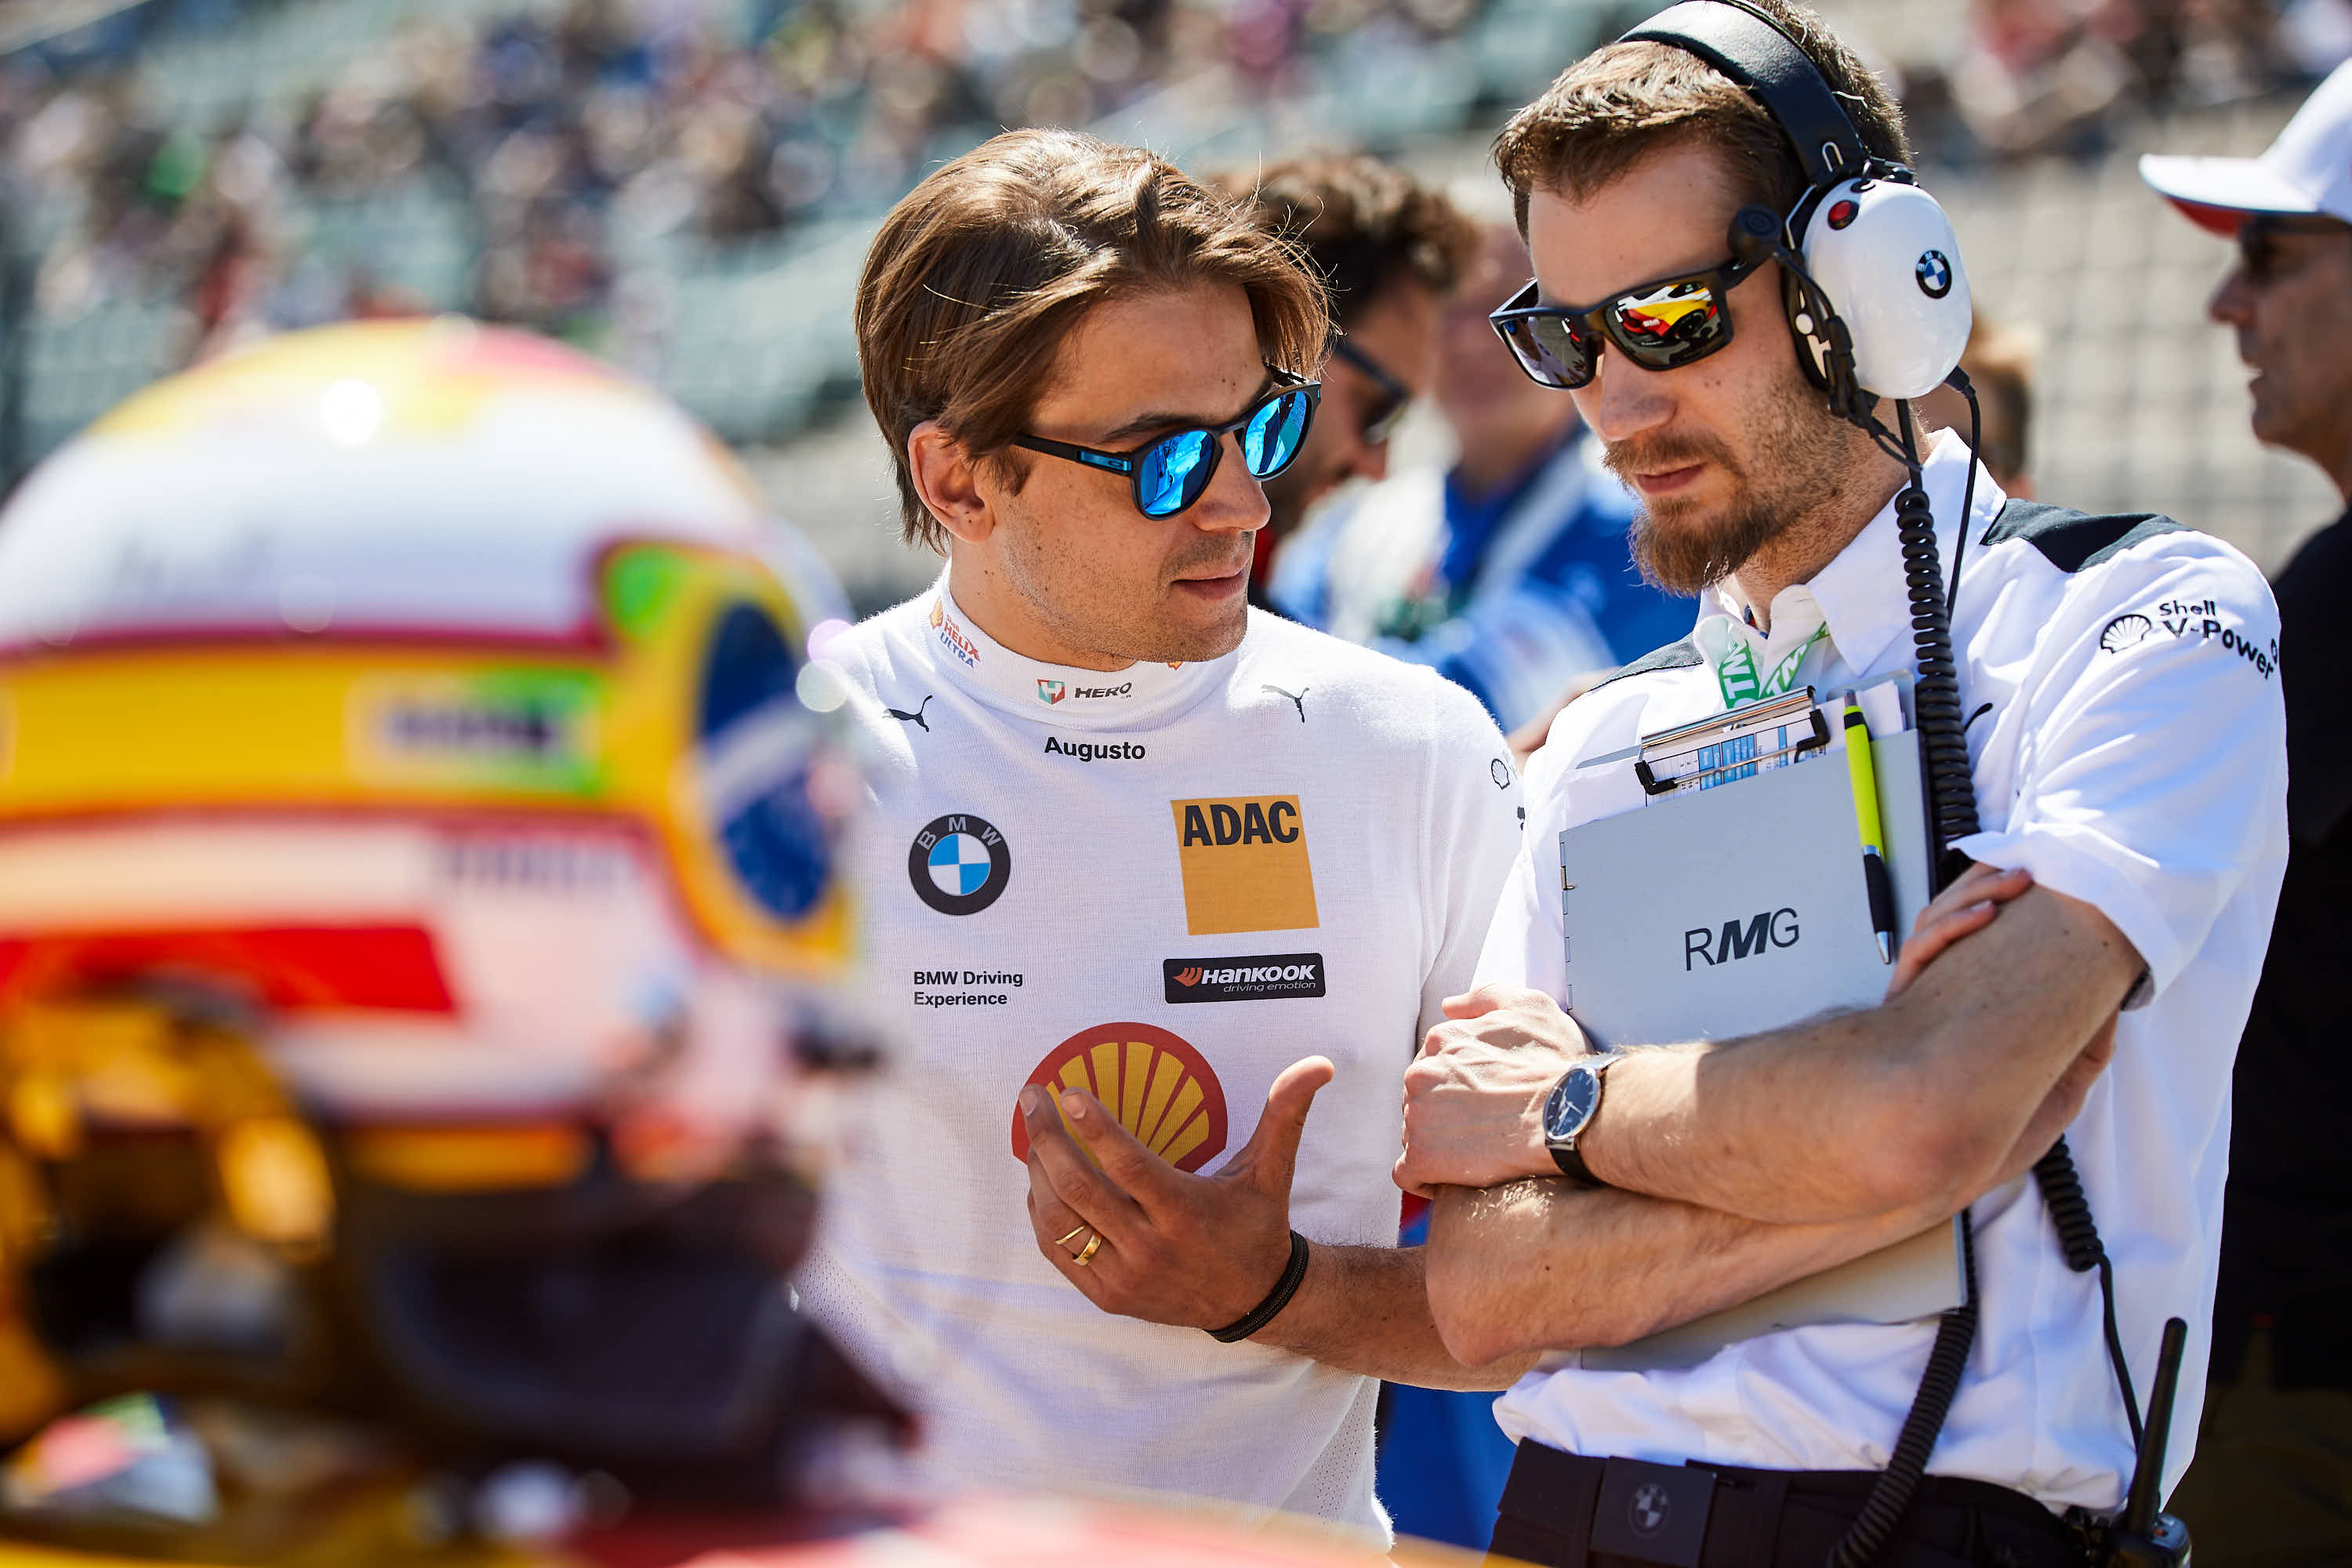 Photo of DTM – Em Hungaroring, Augusto Farfus disputa 3ª etapa do DTM, antes de treinos em Le Mans